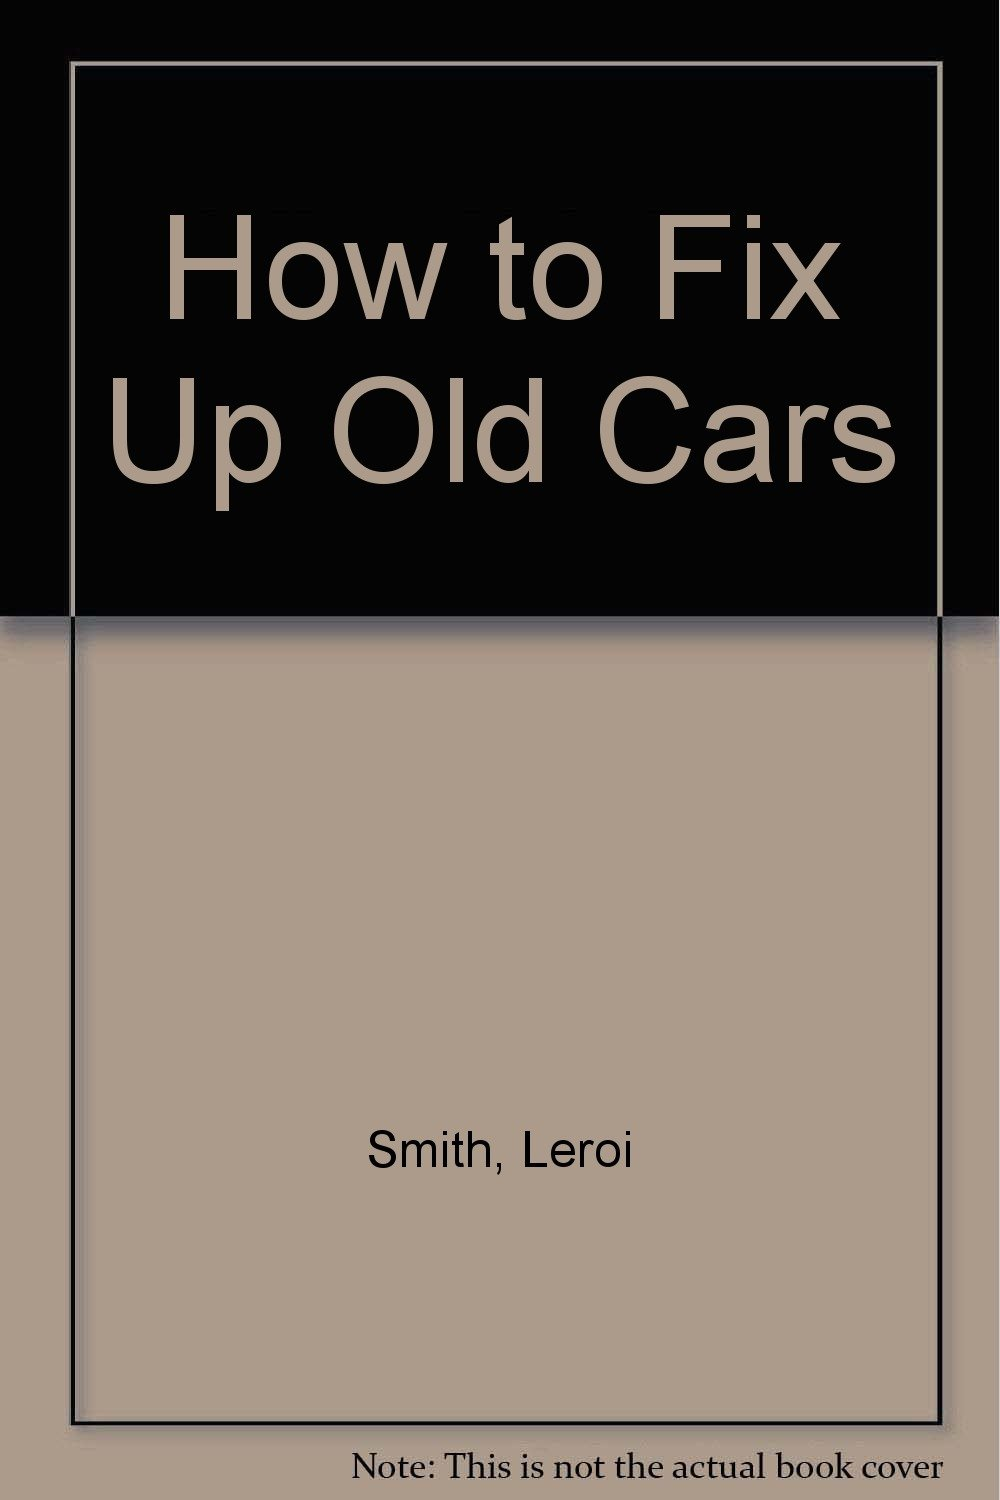 How to Fix Up Old Cars: Leroi Smith: 9780396078302: Amazon.com: Books